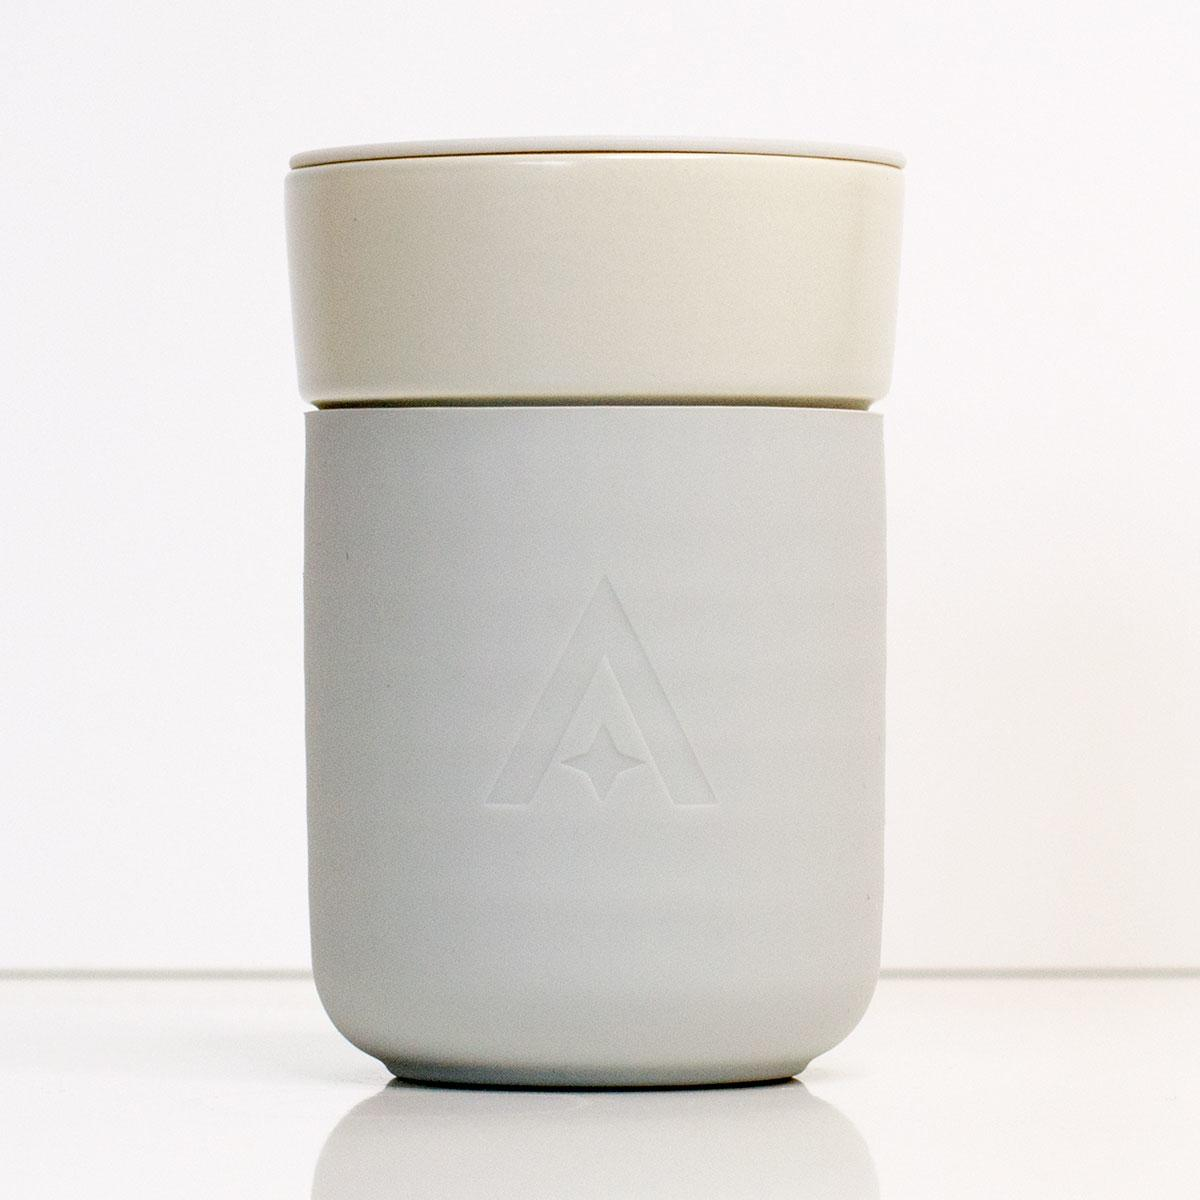 Carry Cup - The Universal Travel Mug by Uberstar (Natural Stone)